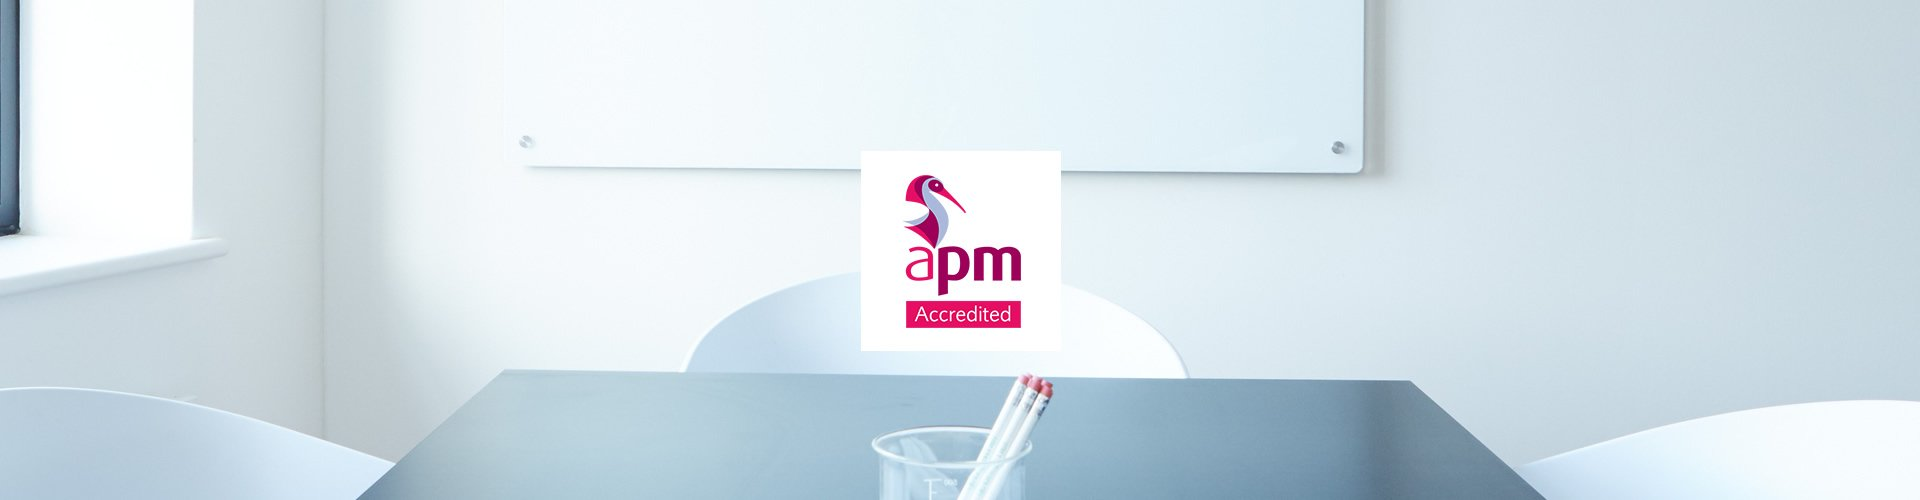 APM Accredited Project Fundamentals Qualification